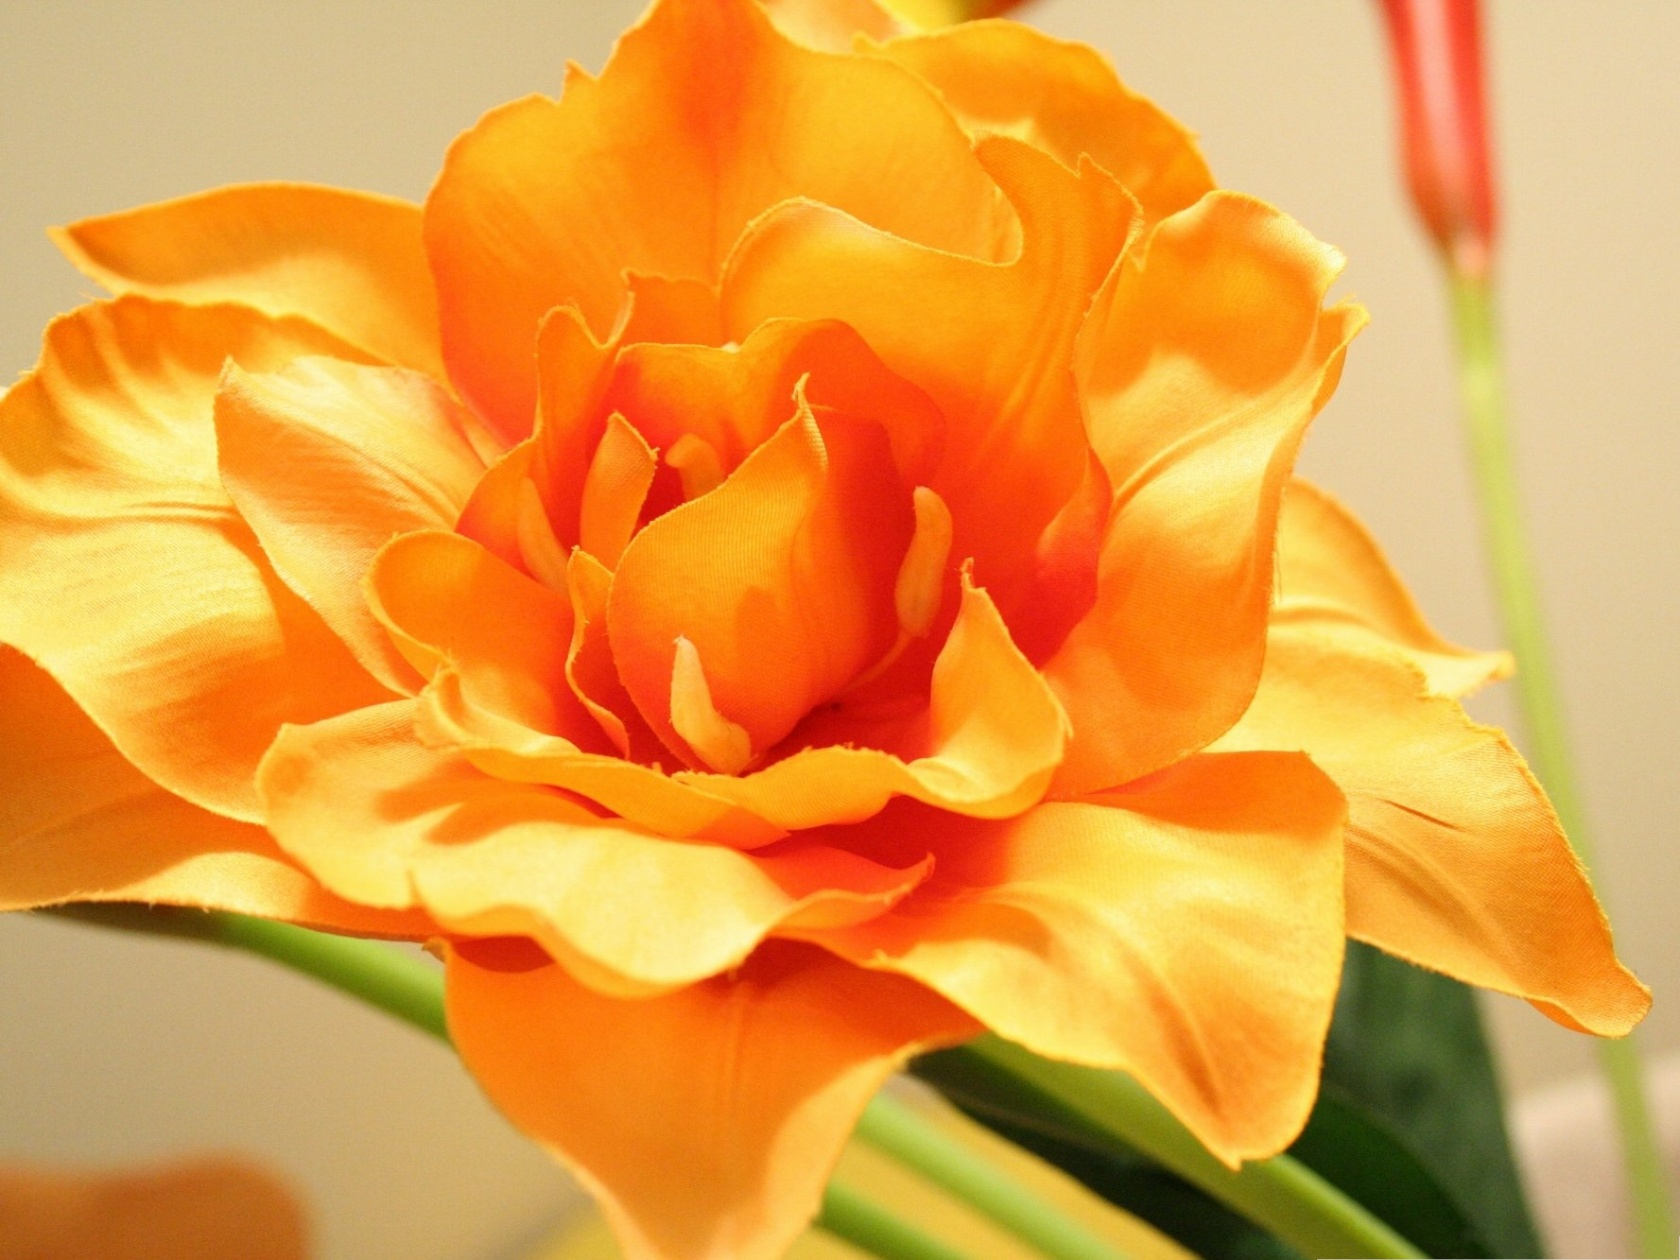 click to free download the wallpaper--Orange Flowers Picture, Beautiful Flower in Bloom, Amazing Look 1600X1200 free wallpaper download